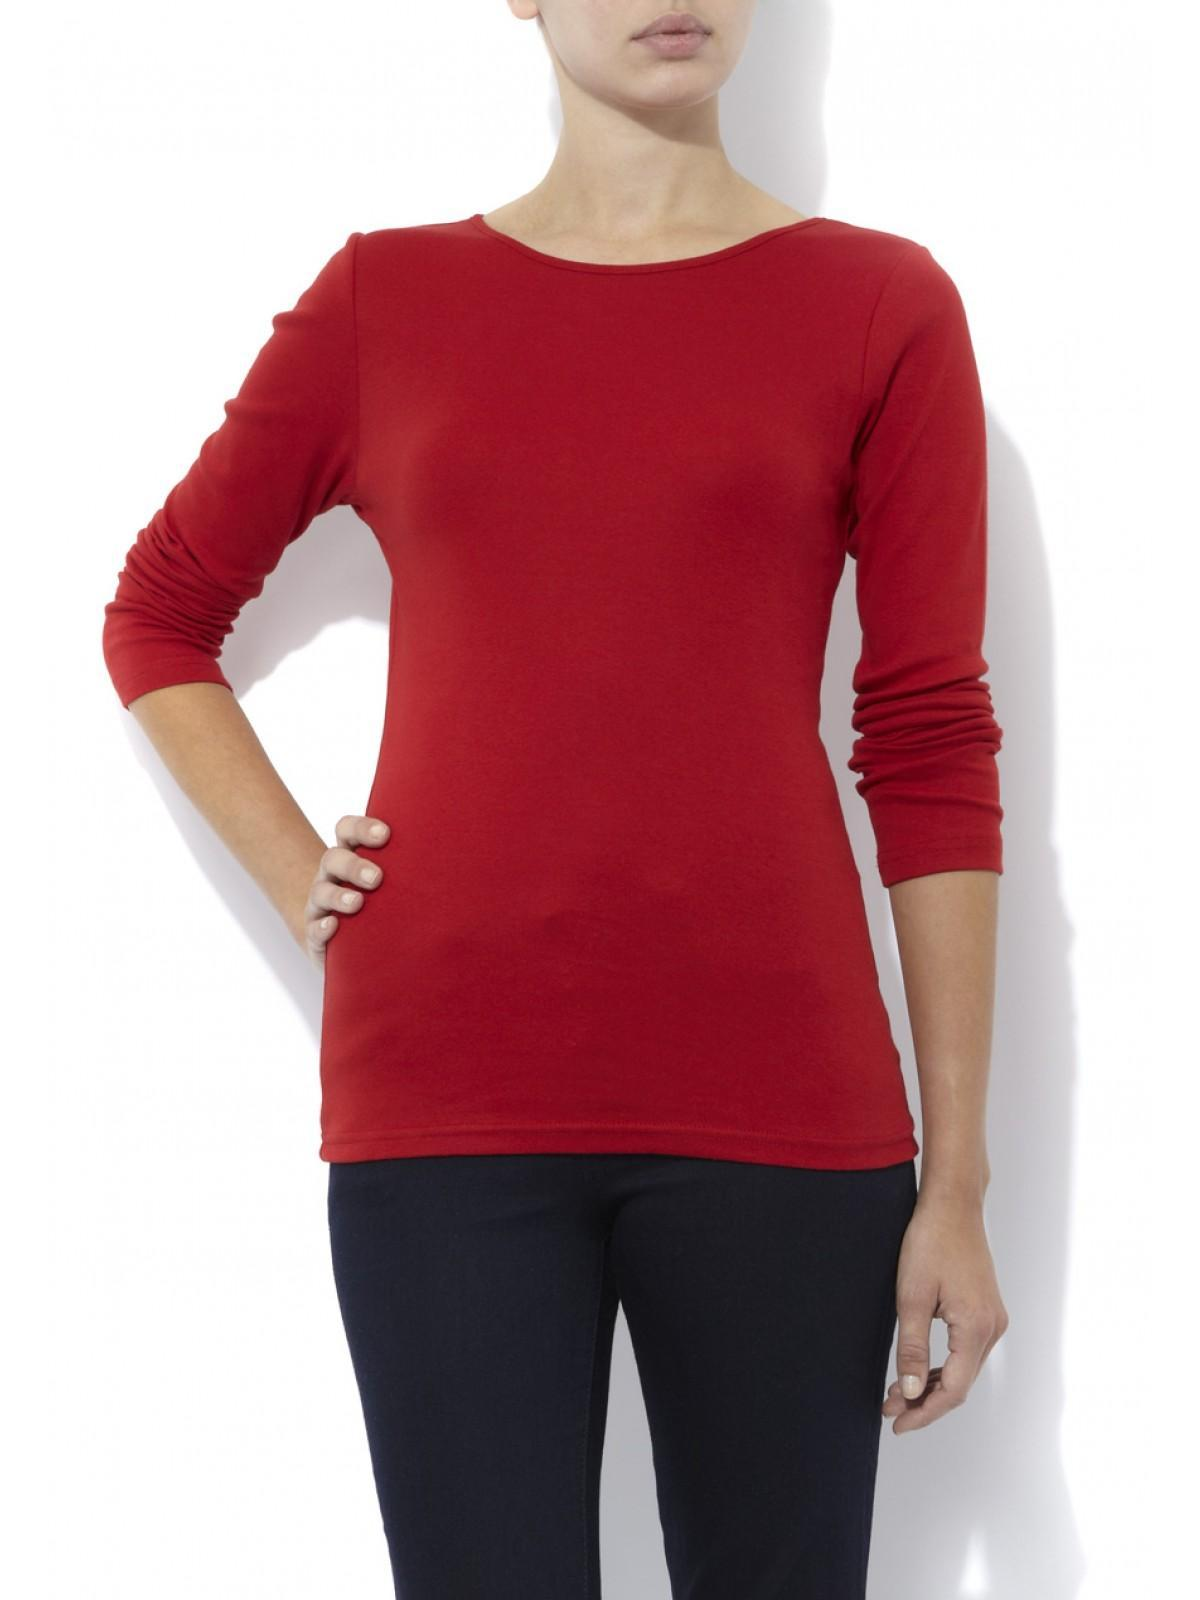 Find great deals on eBay for red long sleeve shirt women's. Shop with confidence.